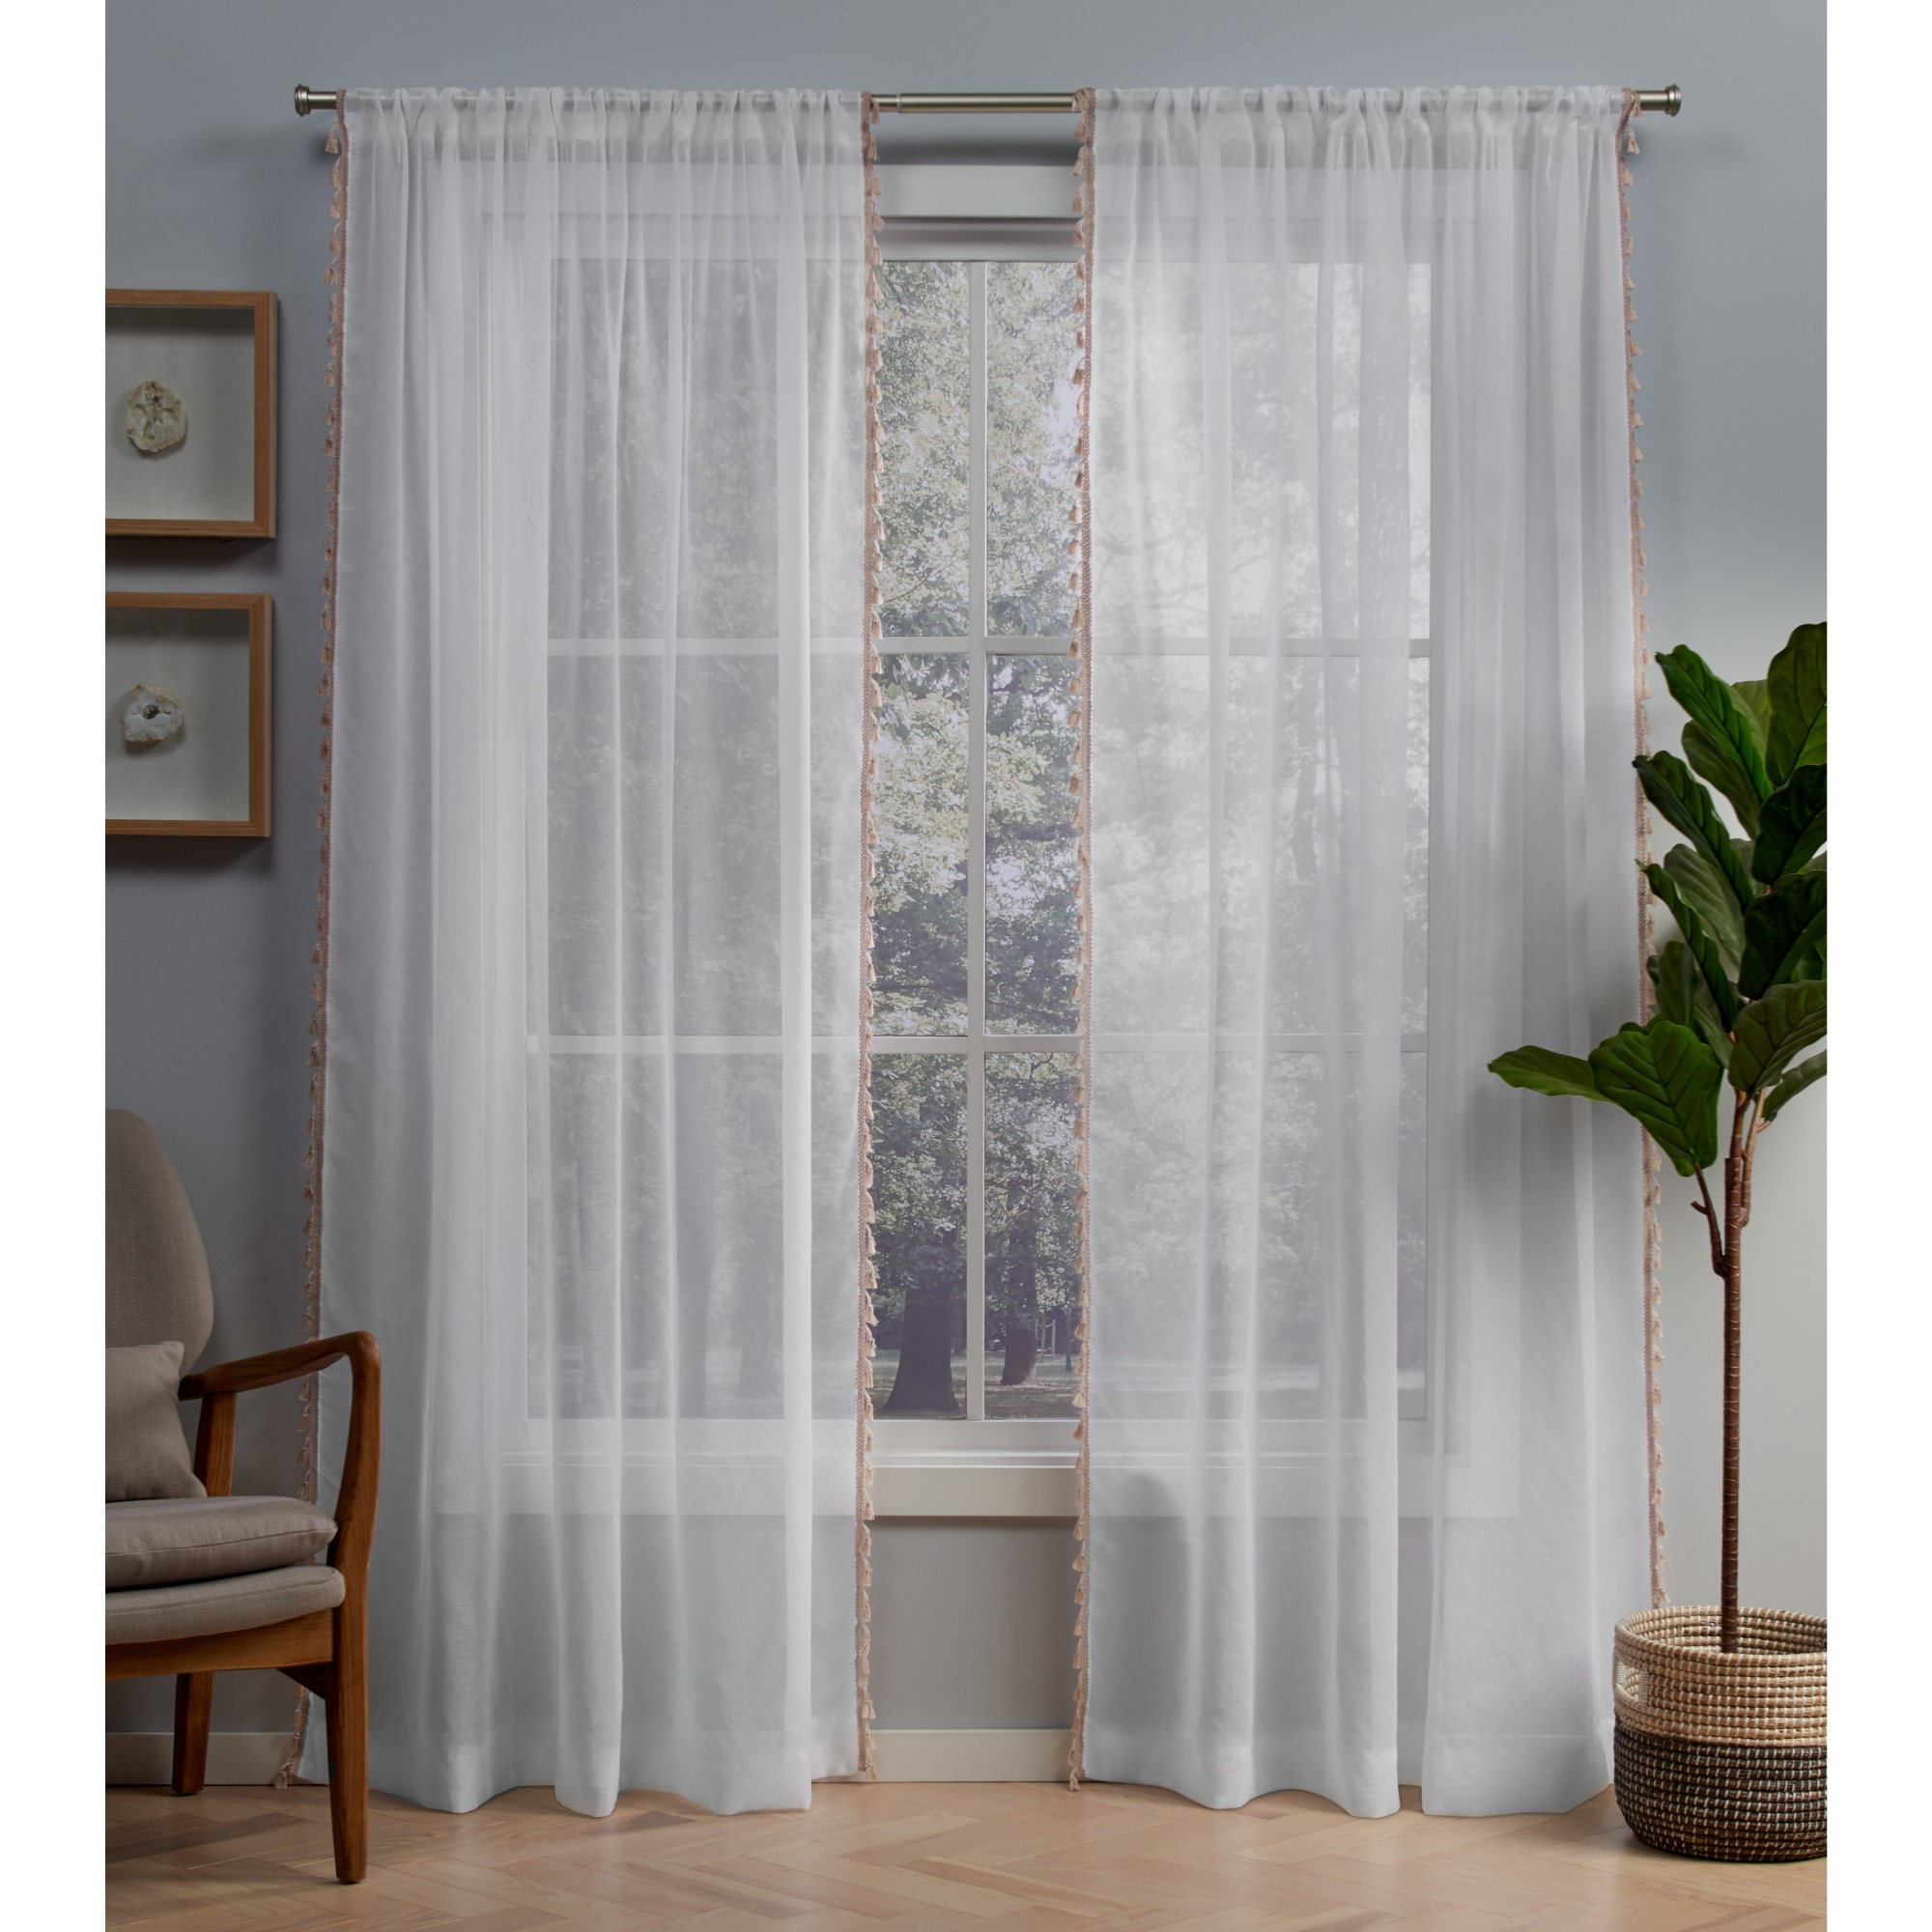 Exclusive Home Curtains 2 Pack Tassels Sheer Rod Pocket Curtain Panels –  Walmart Within Fashionable Tassels Applique Sheer Rod Pocket Top Curtain Panel Pairs (Gallery 12 of 20)